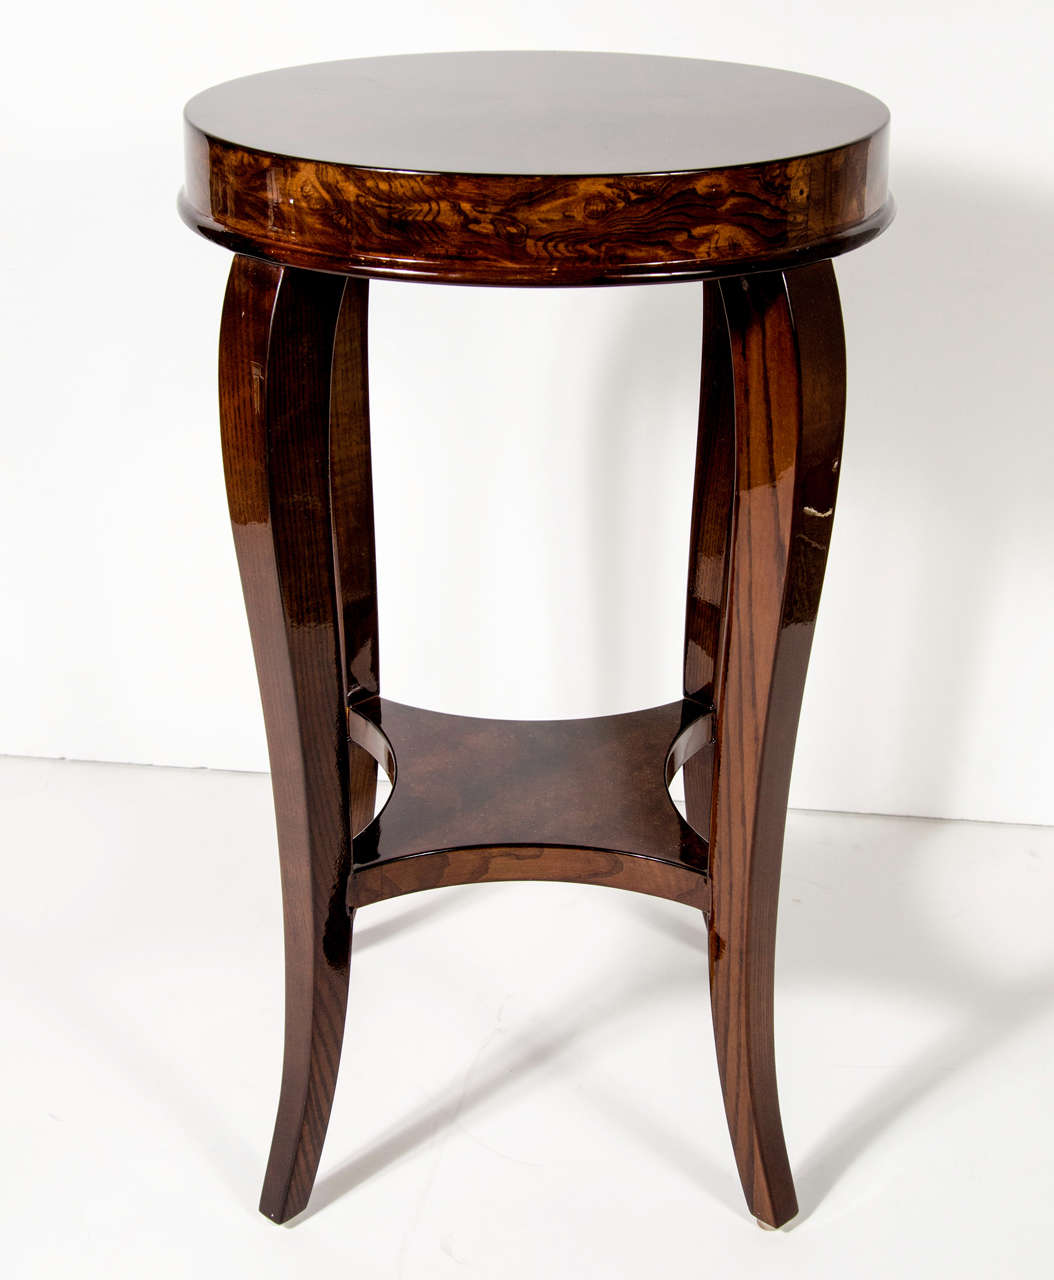 Gorgeous Art Deco Two-Tiered Occasional/End Table 4